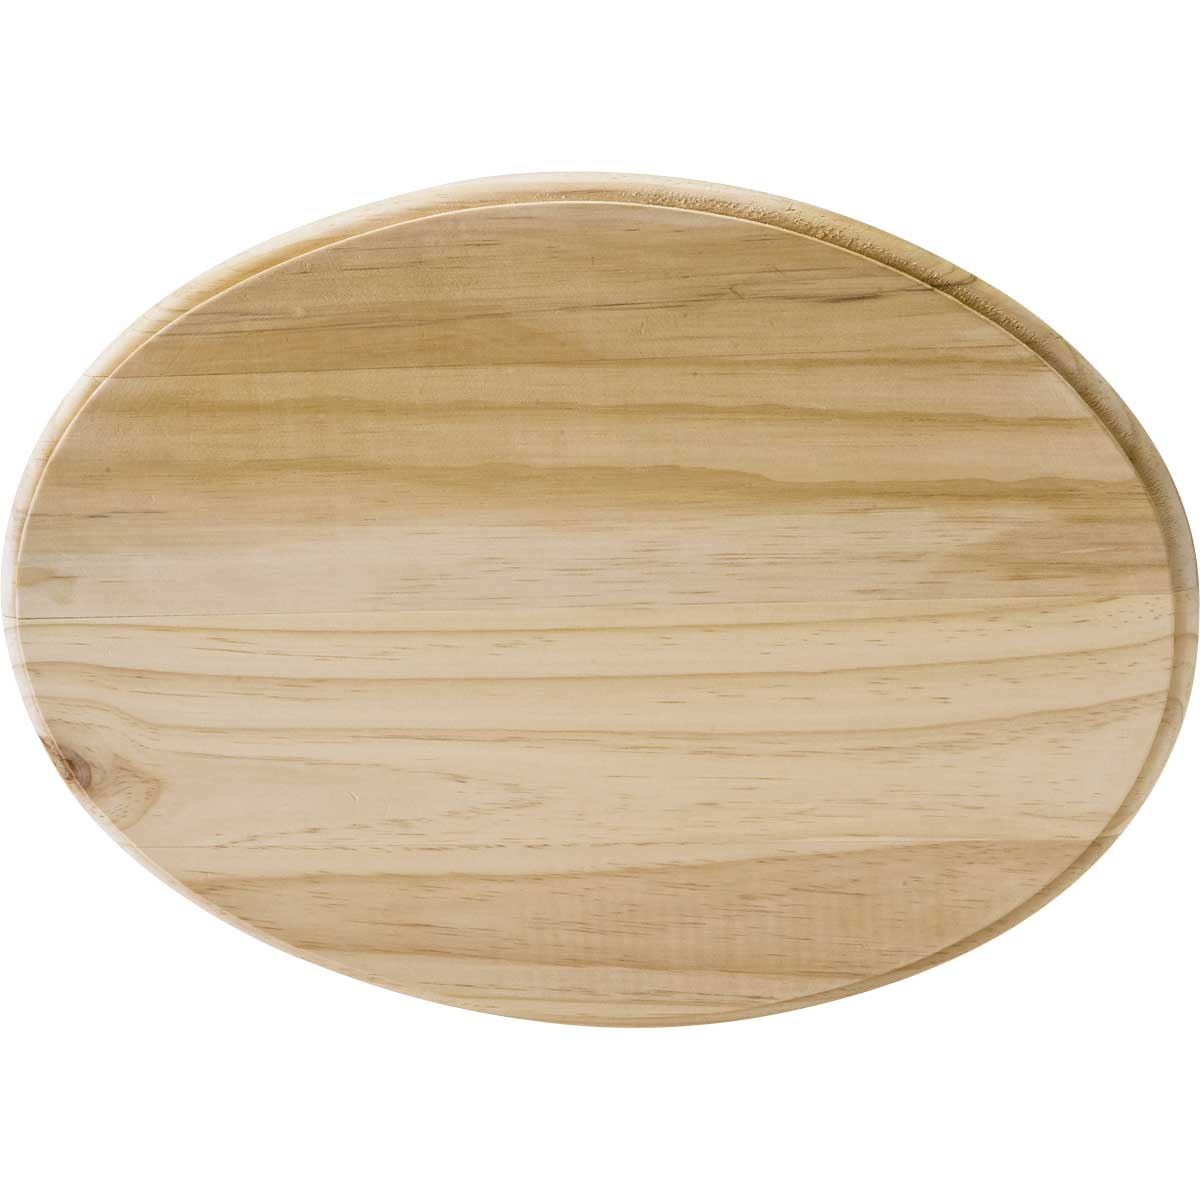 Plaid ® Wood Surfaces - Plaques - Oval - 96292